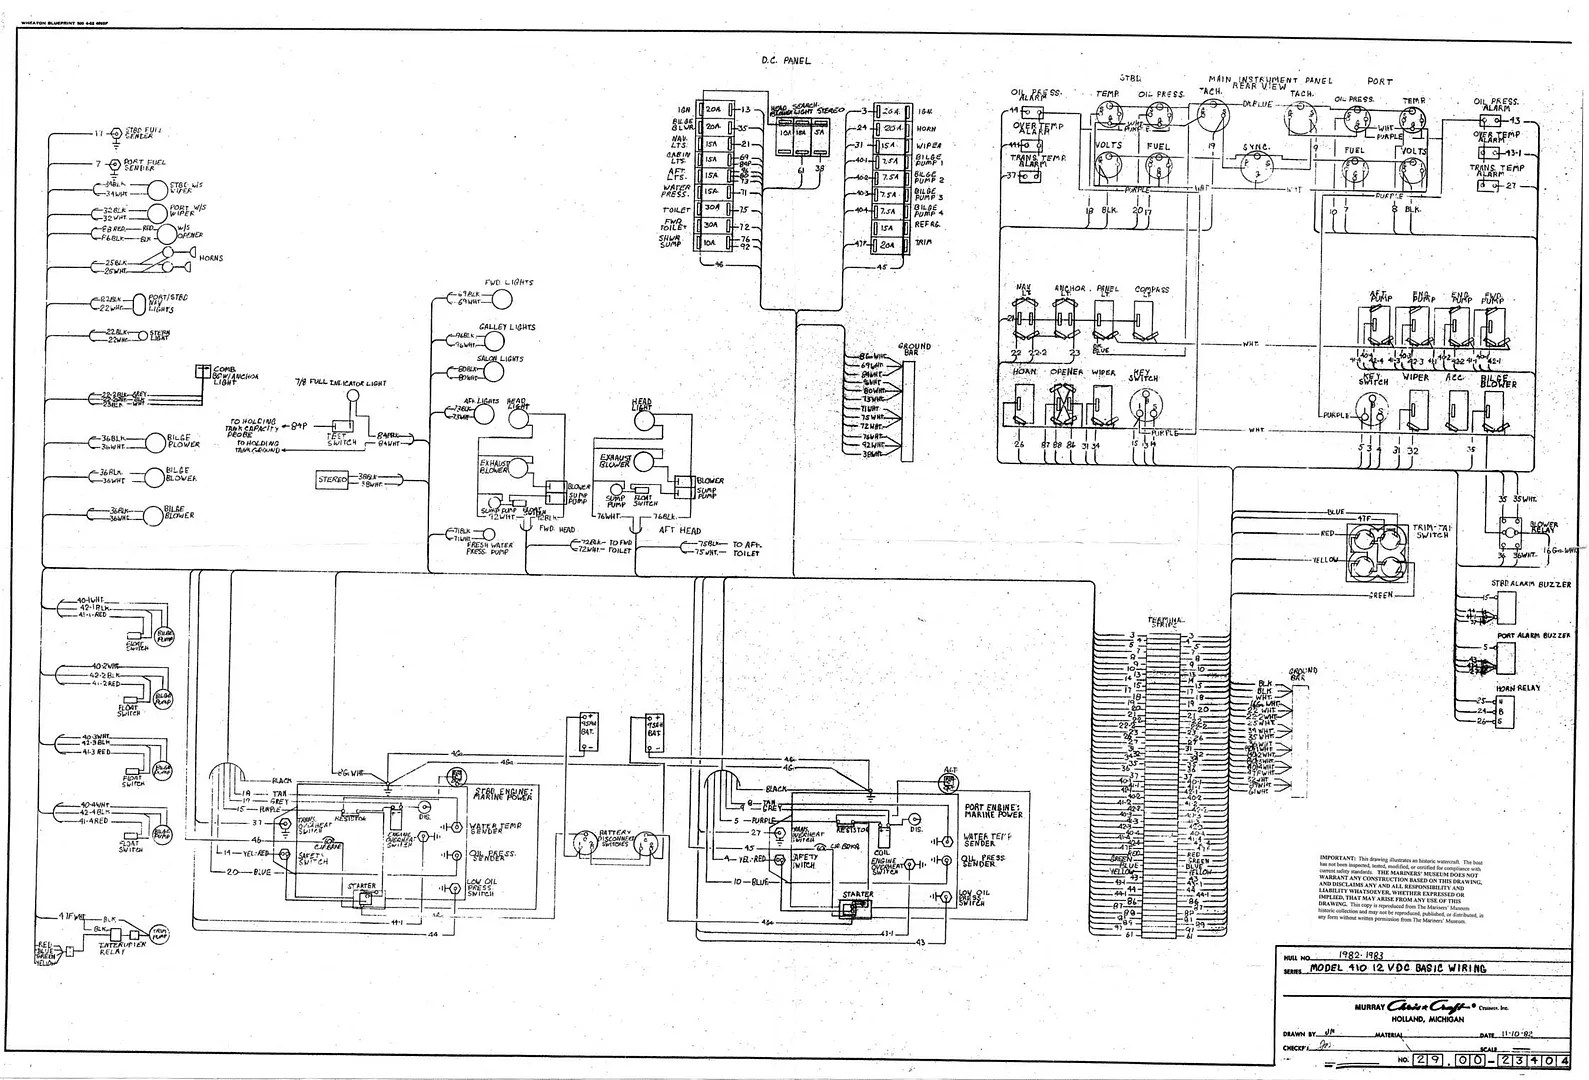 DIAGRAM] Chris Craft Deck Boat Wiring Diagram FULL Version HD Quality Wiring  Diagram - PHOENIXASSISTEDCARE.LUCB.FRphoenixassistedcare.lucb.fr